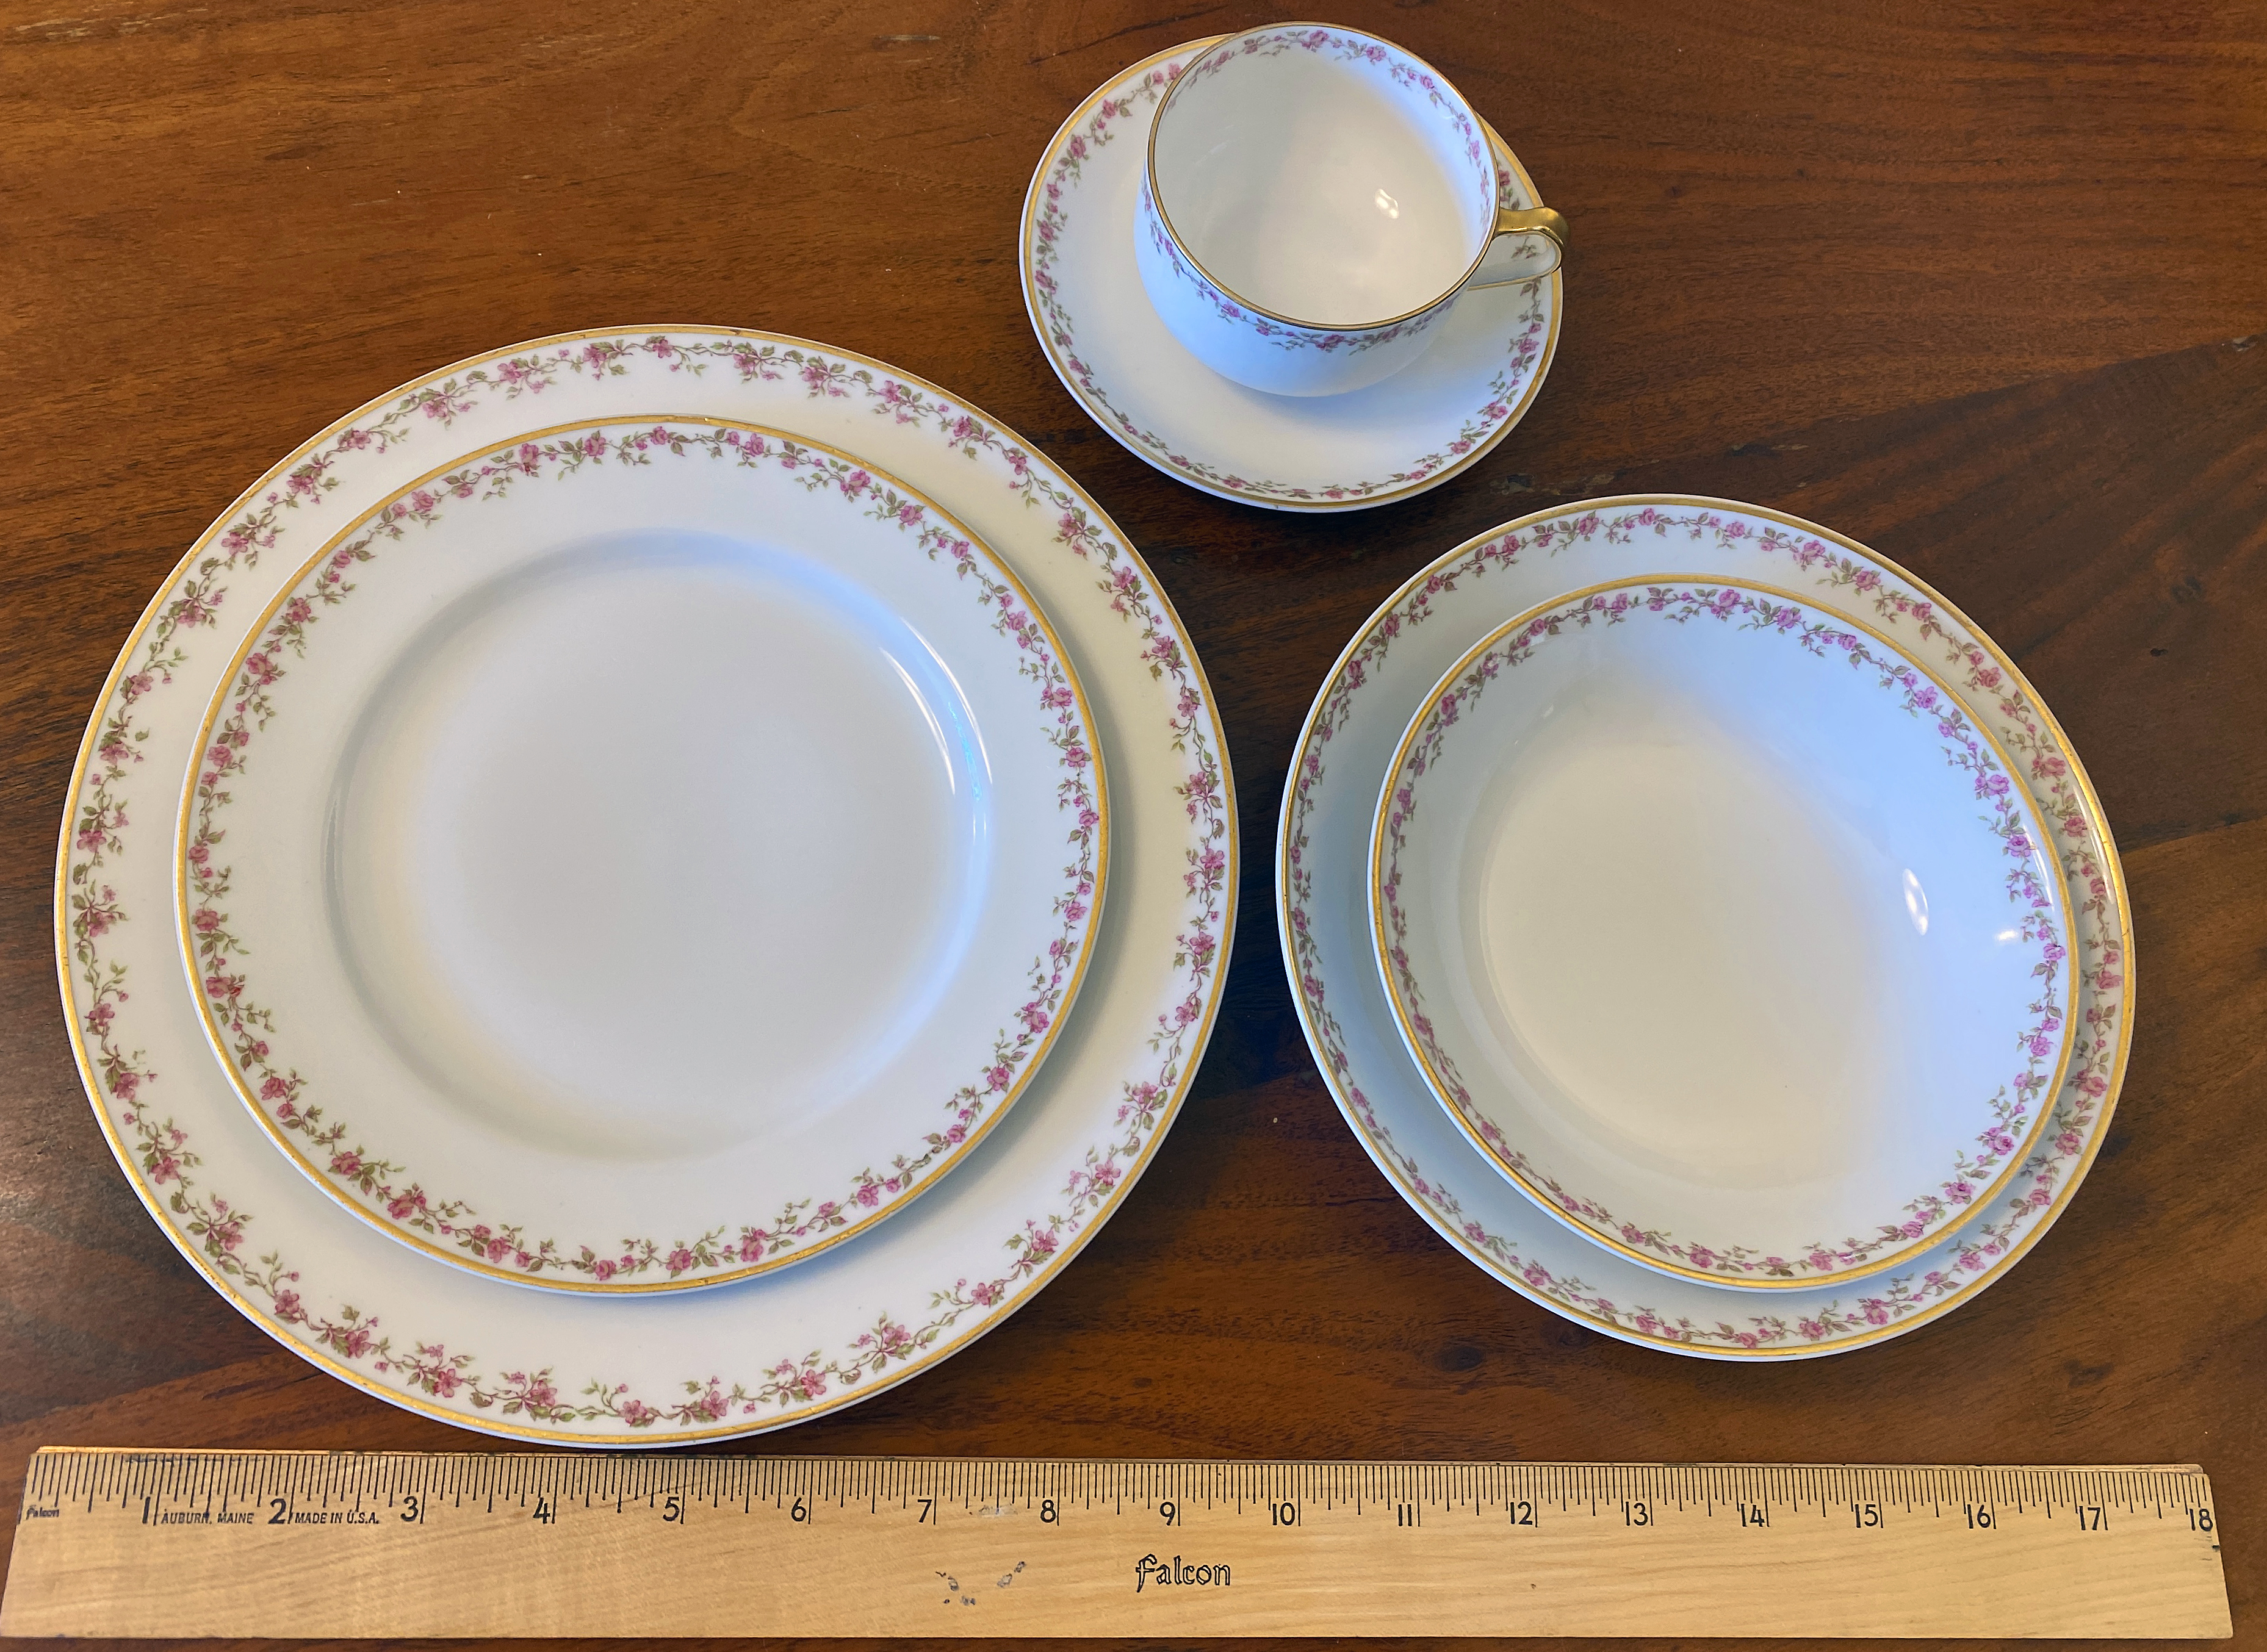 14t1 - Haviland Limoges Chinaware - Six Entire 6 piece place settings.JPG